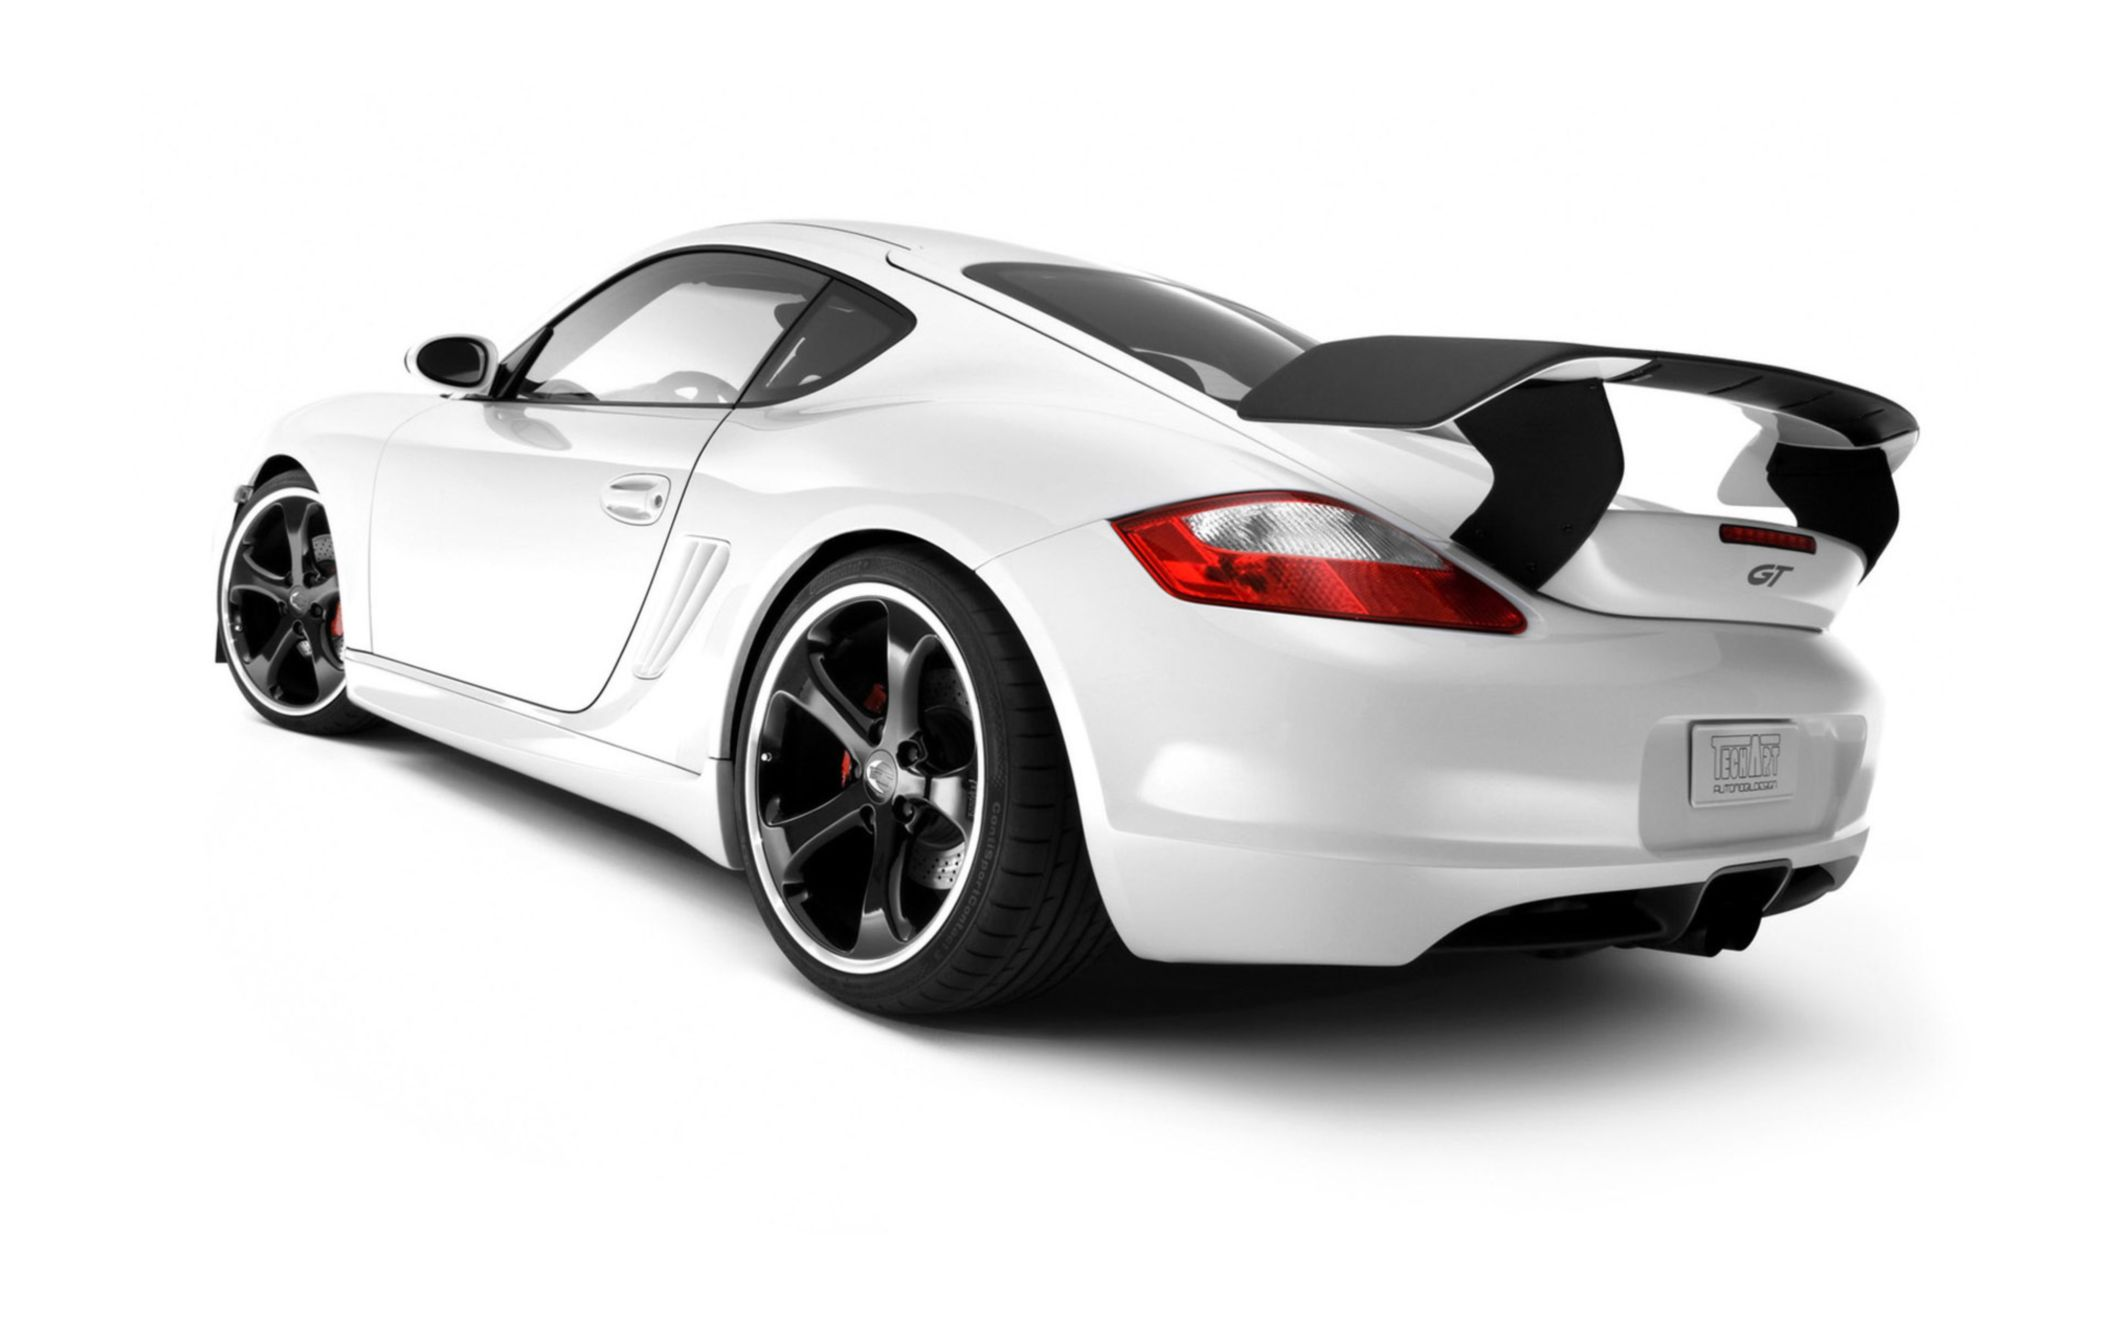 Download free HD Porsche GT White Wide Wallpaper, image